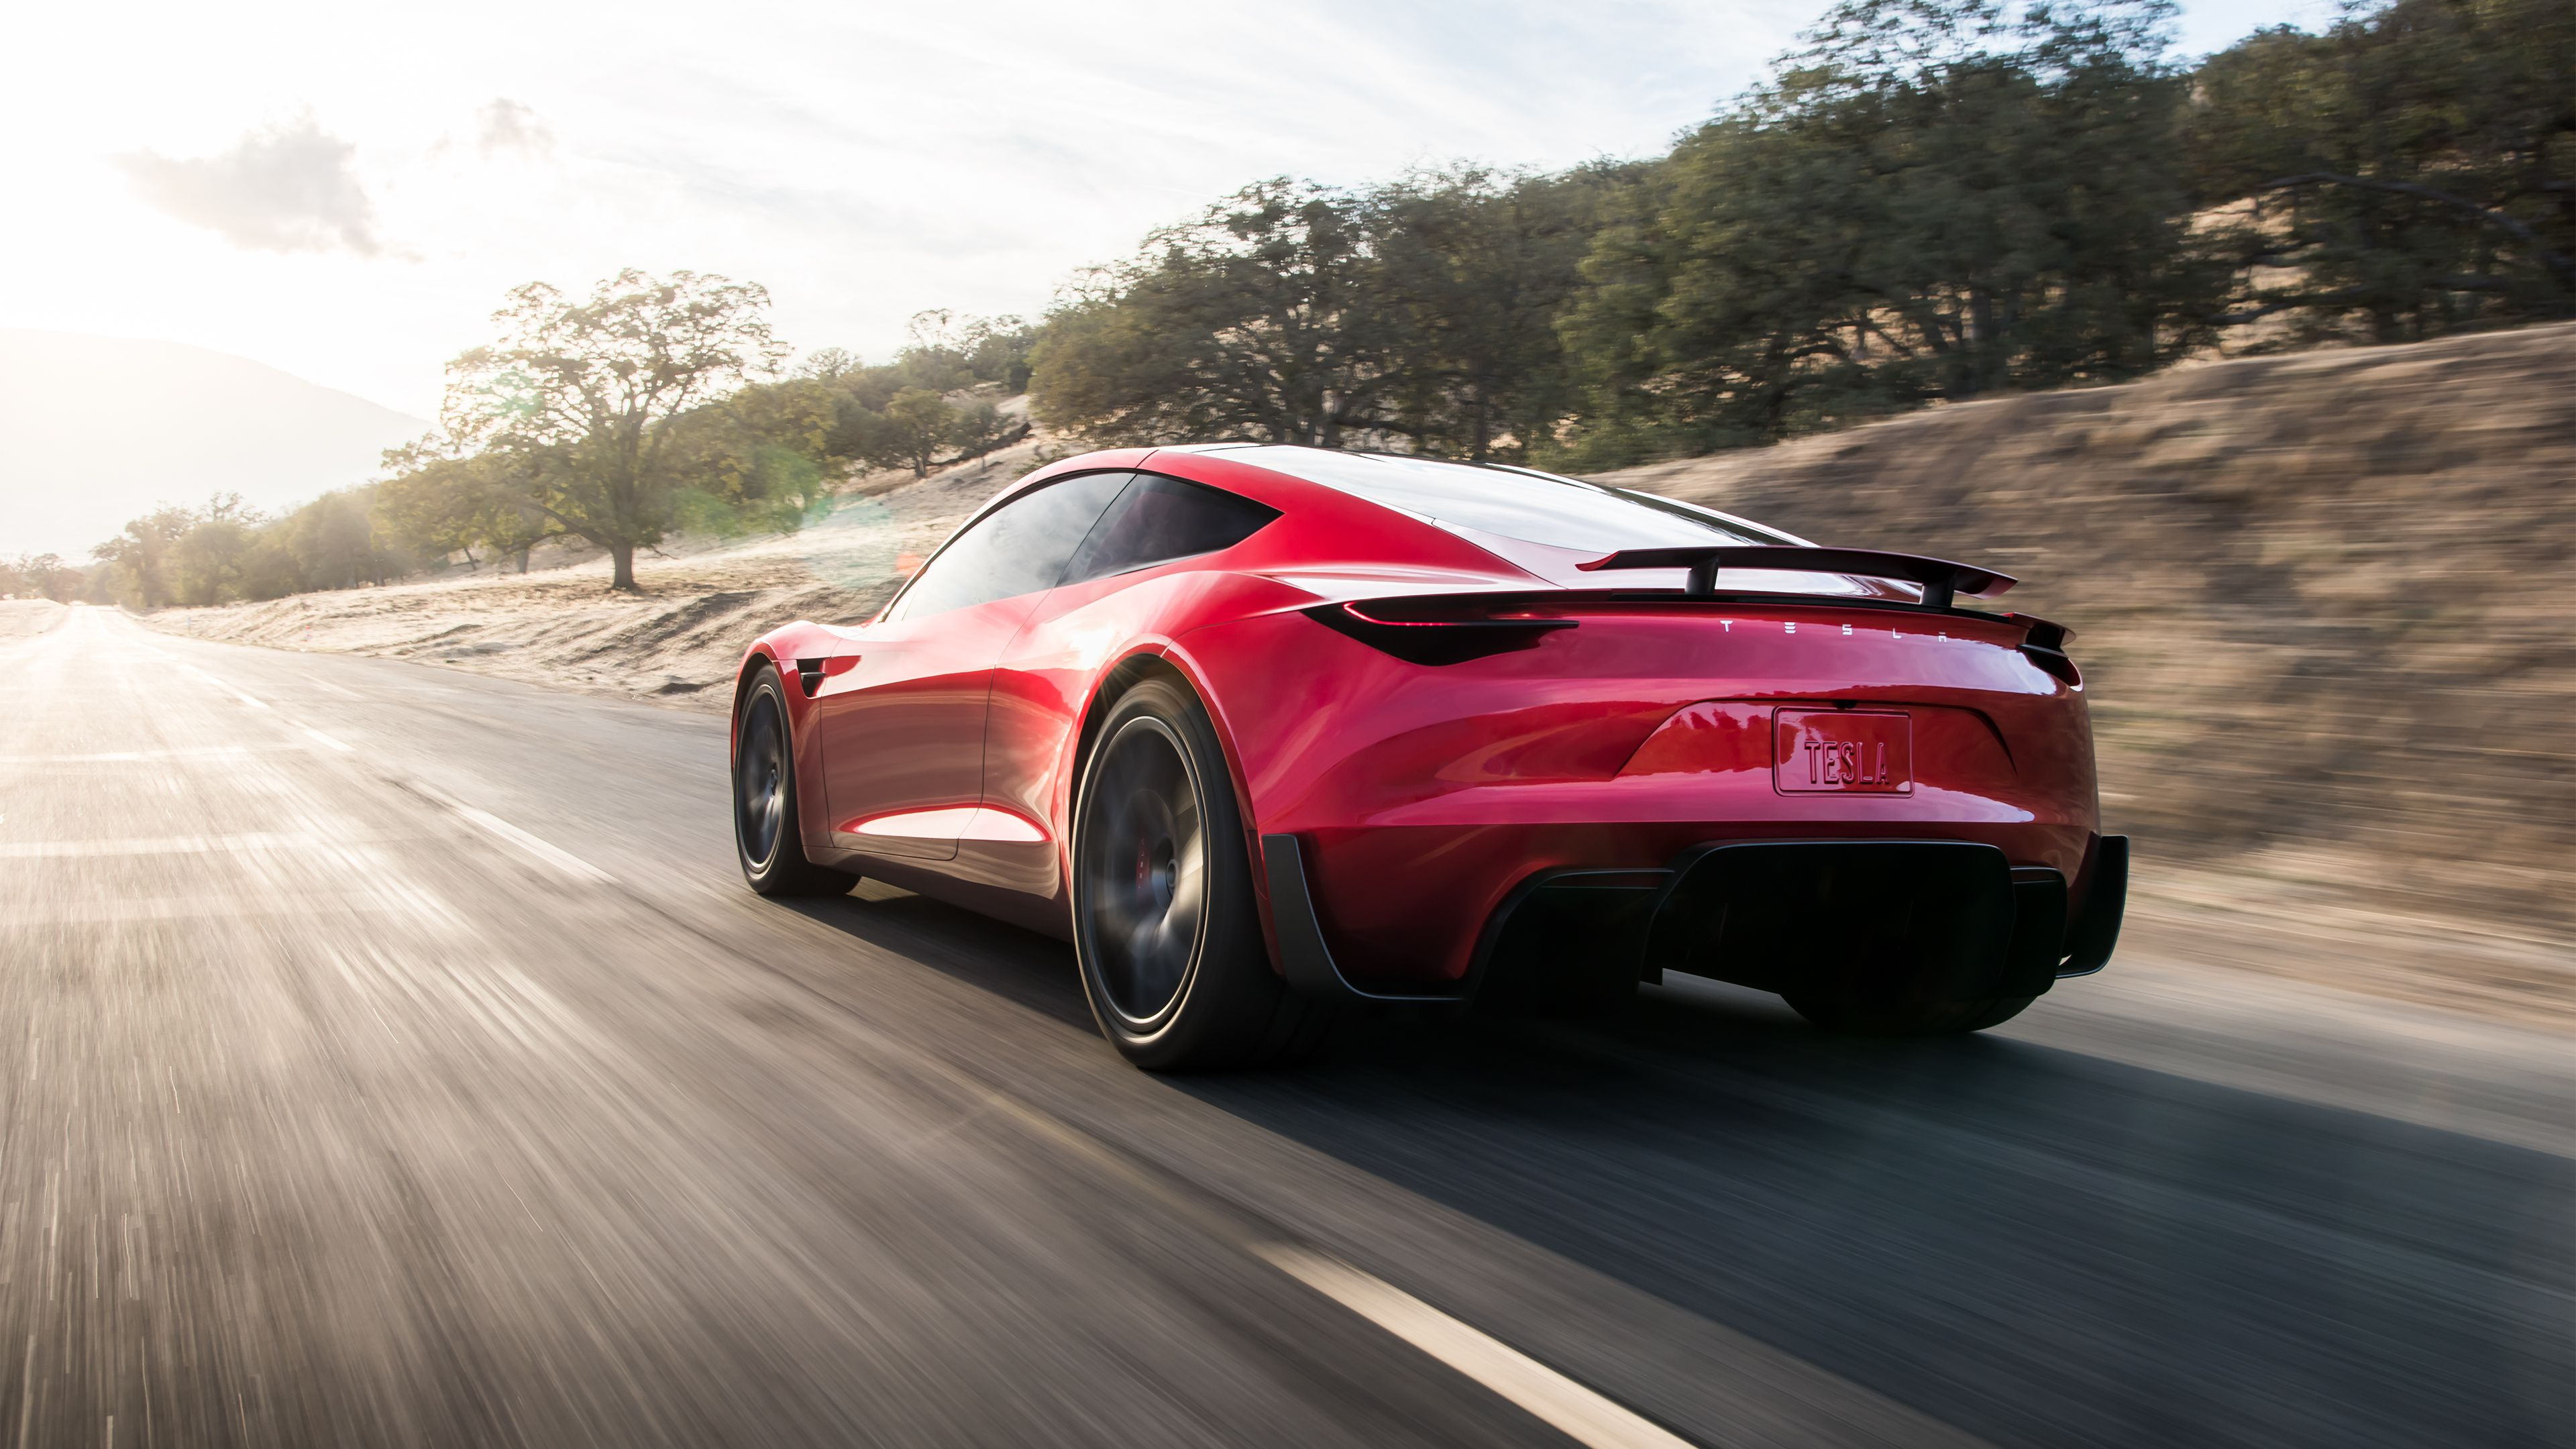 Tesla S Next Gen Roadster Is A Beast 0 60 In 1 9 Sec 620 Miles Of Range